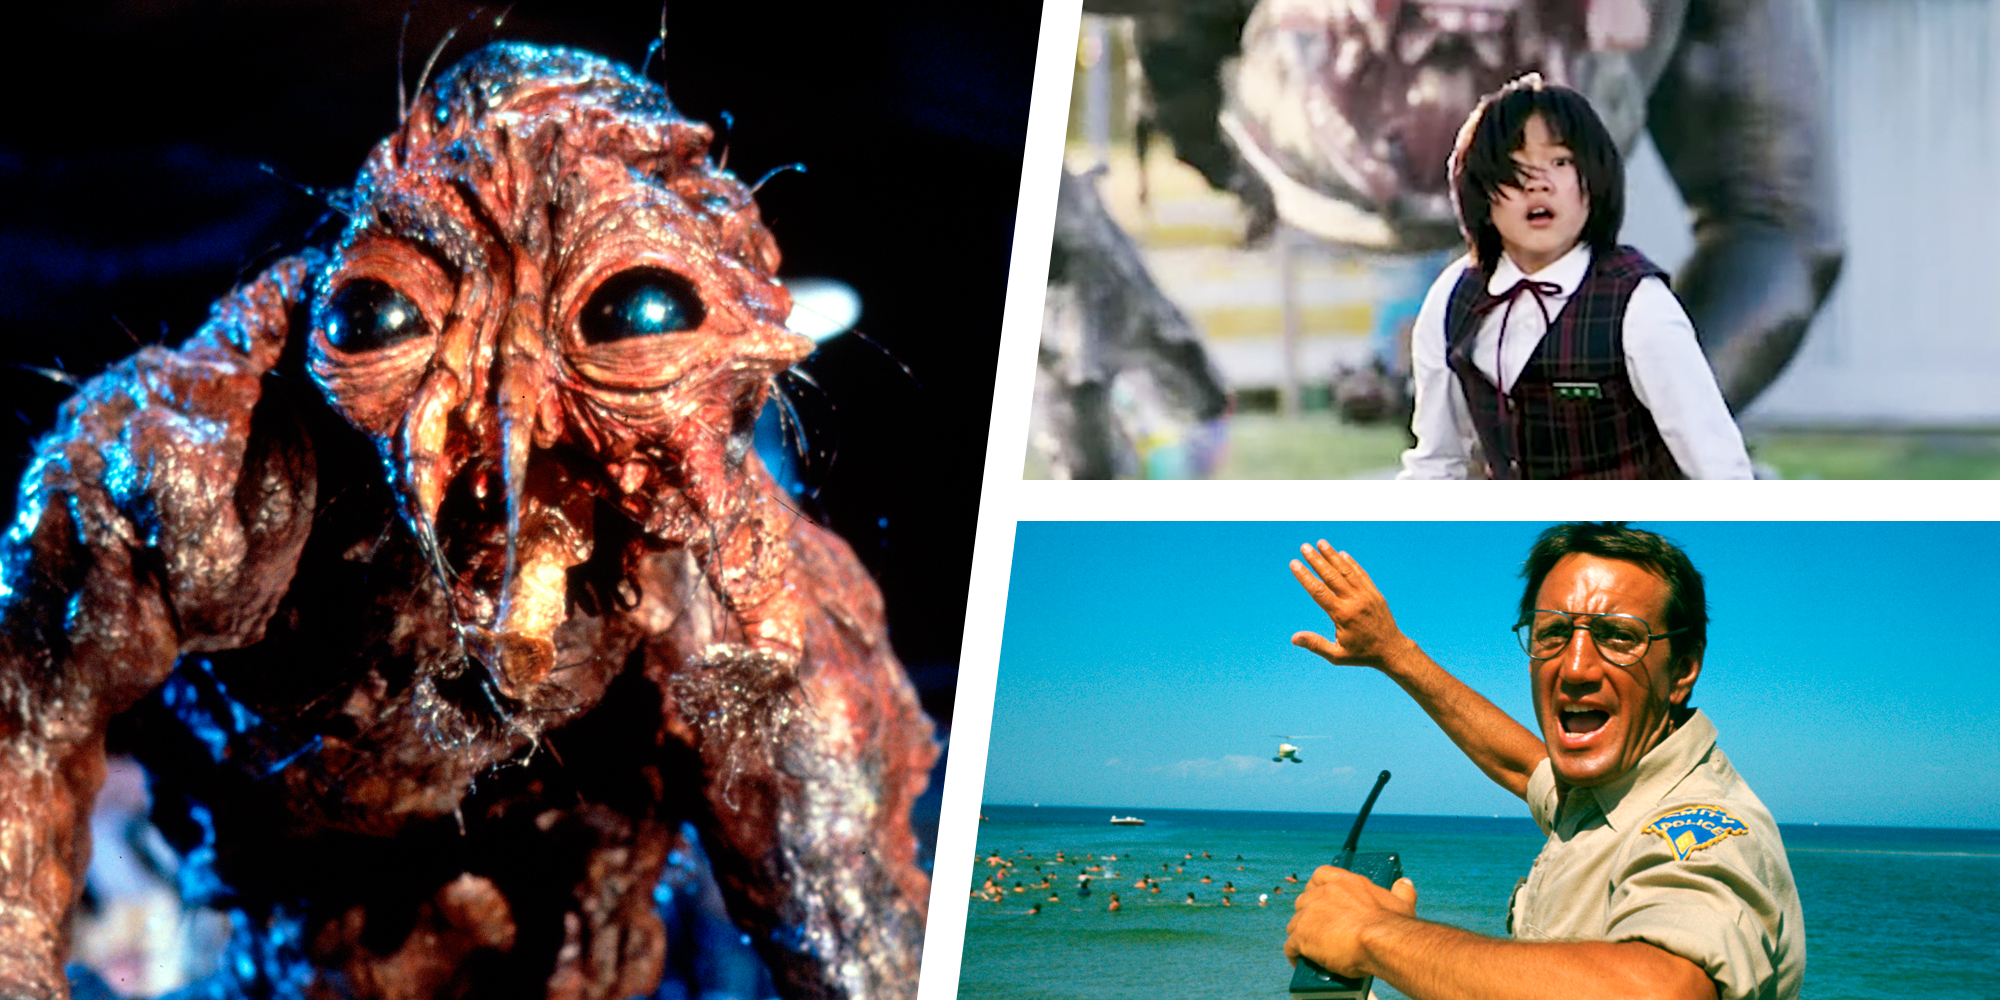 The 21 Best Monster Movies of All Time